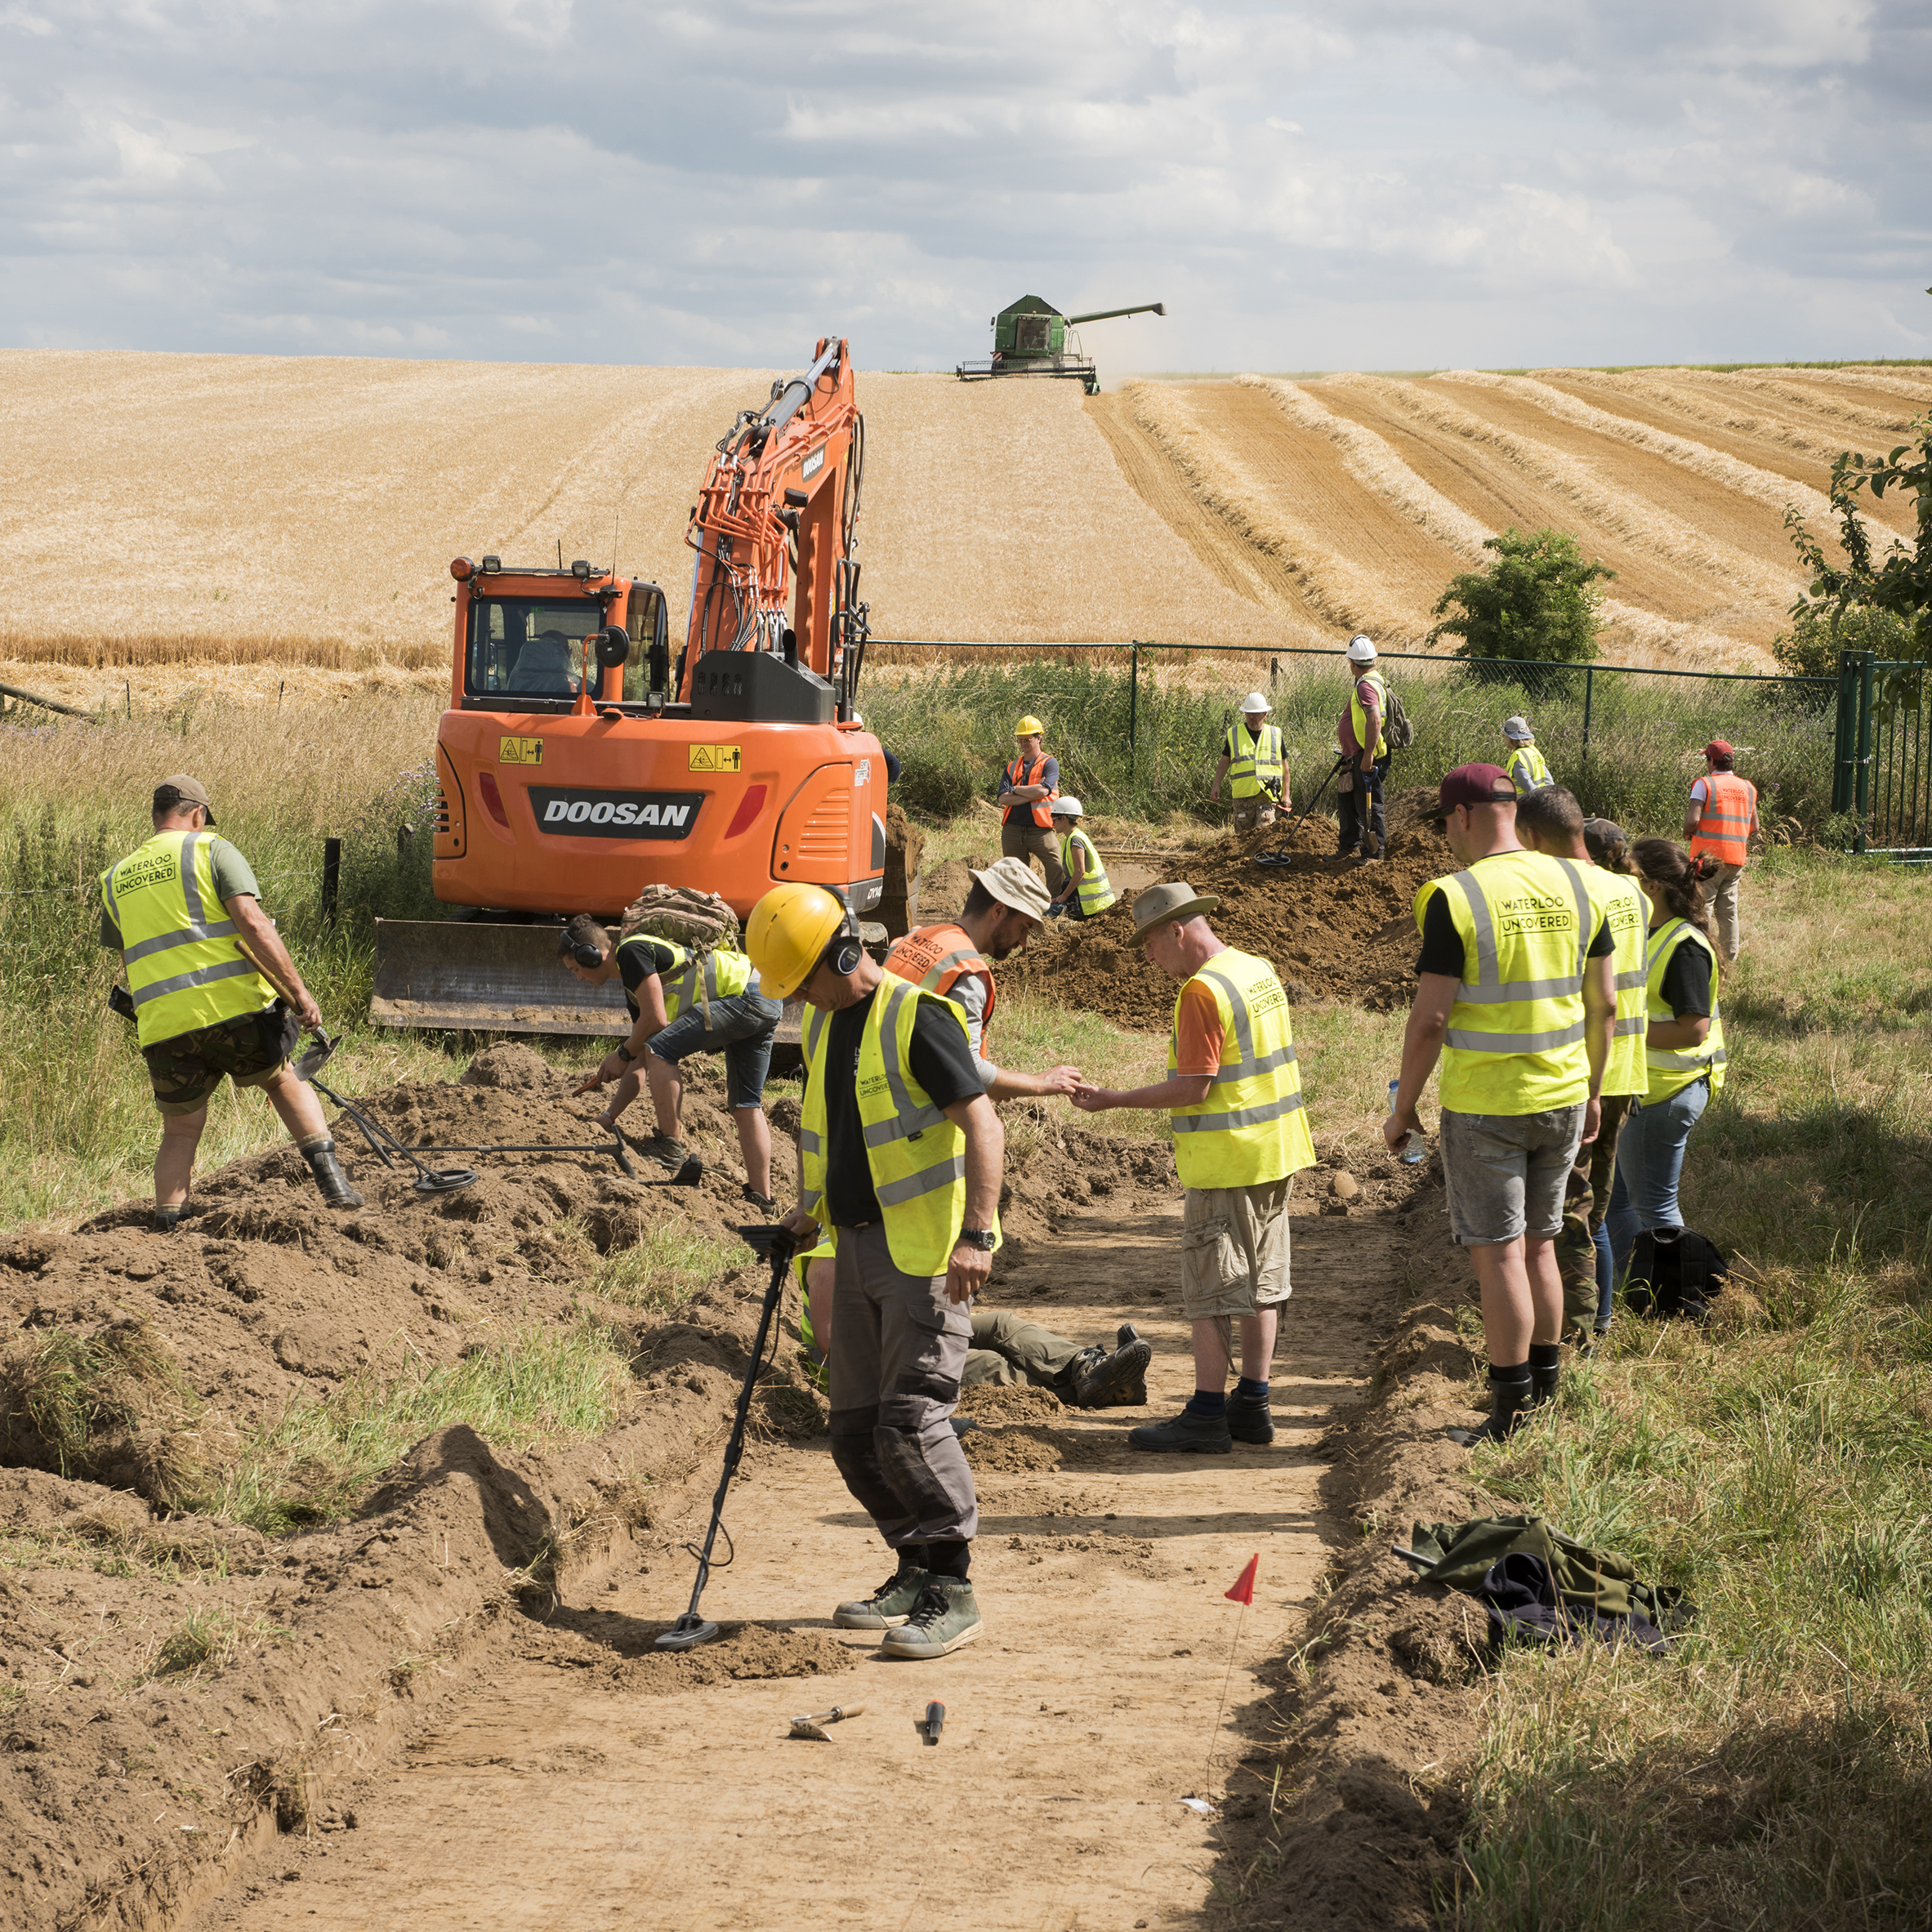 Veterans and archaeologists digging in front of a large orange digger.